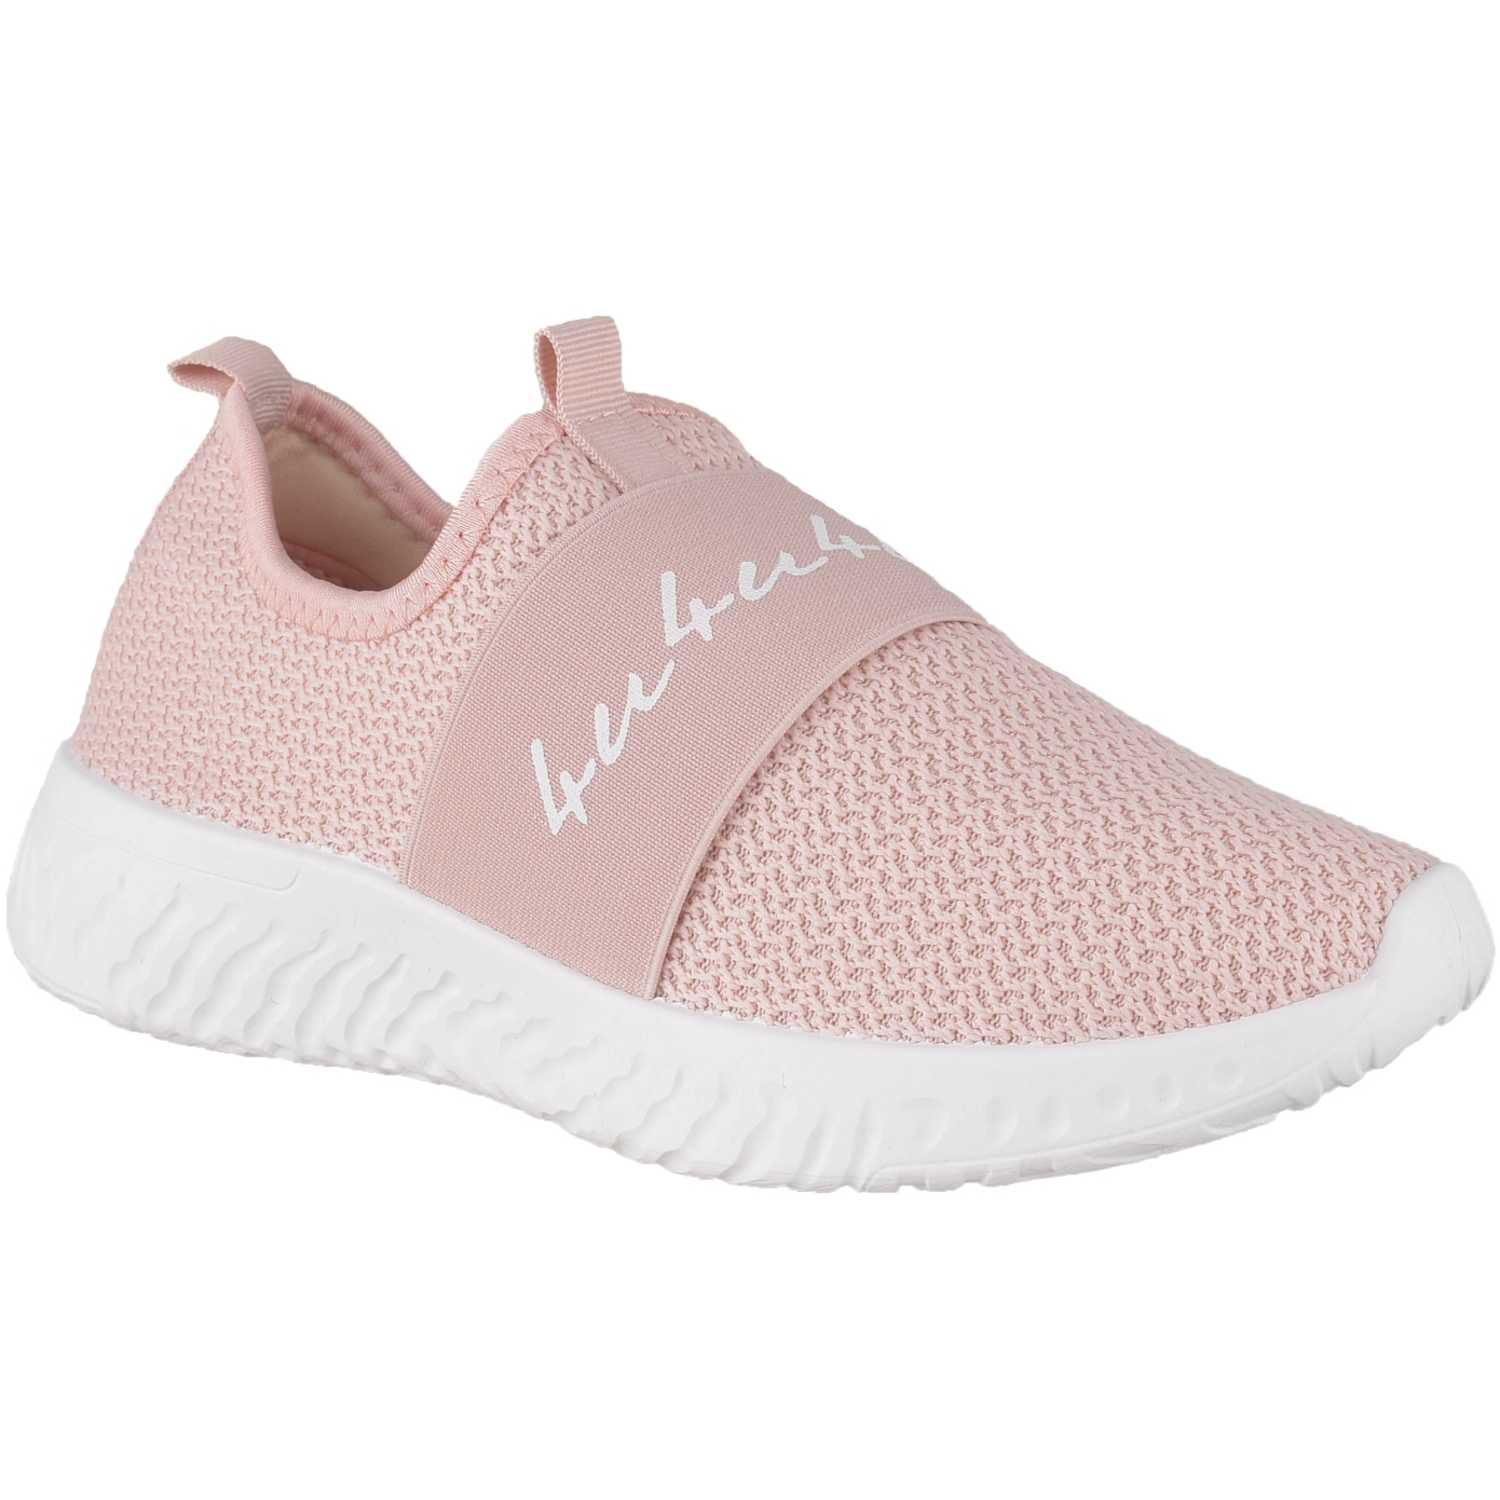 Platanitos z 5612 Rosado Zapatillas Fashion